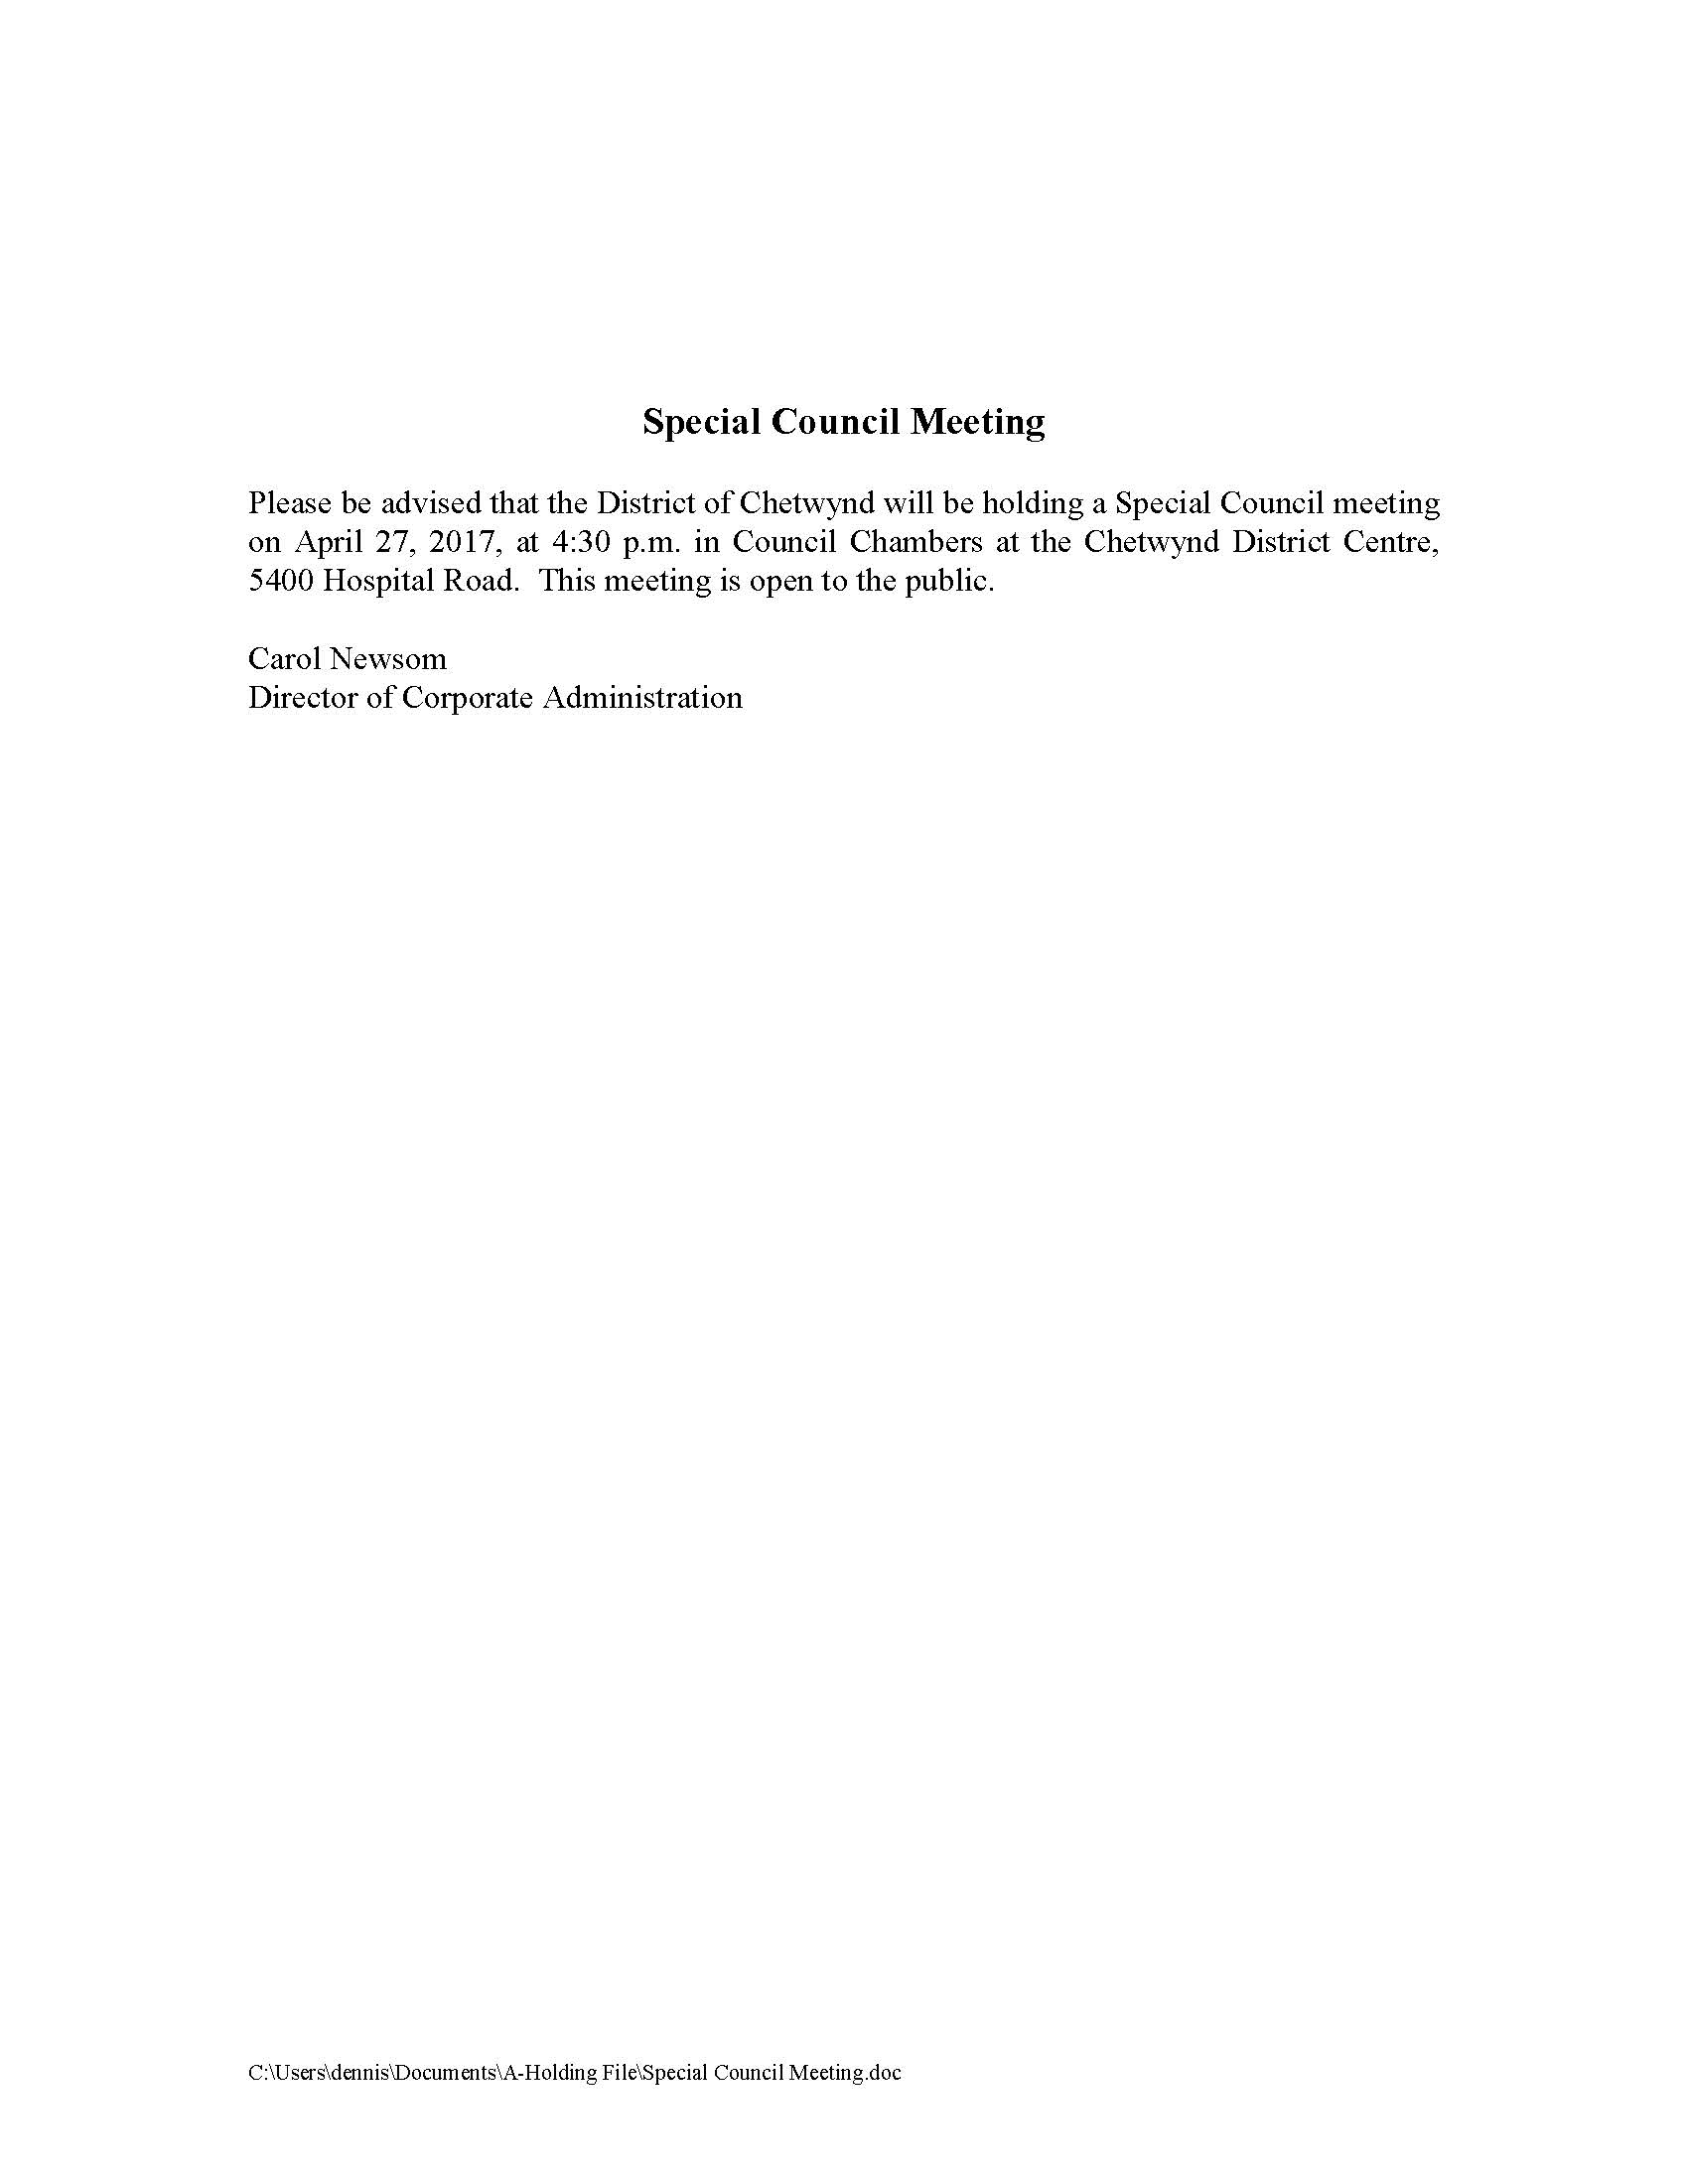 Notice of Special Council Meeting April 27, 2017 ...